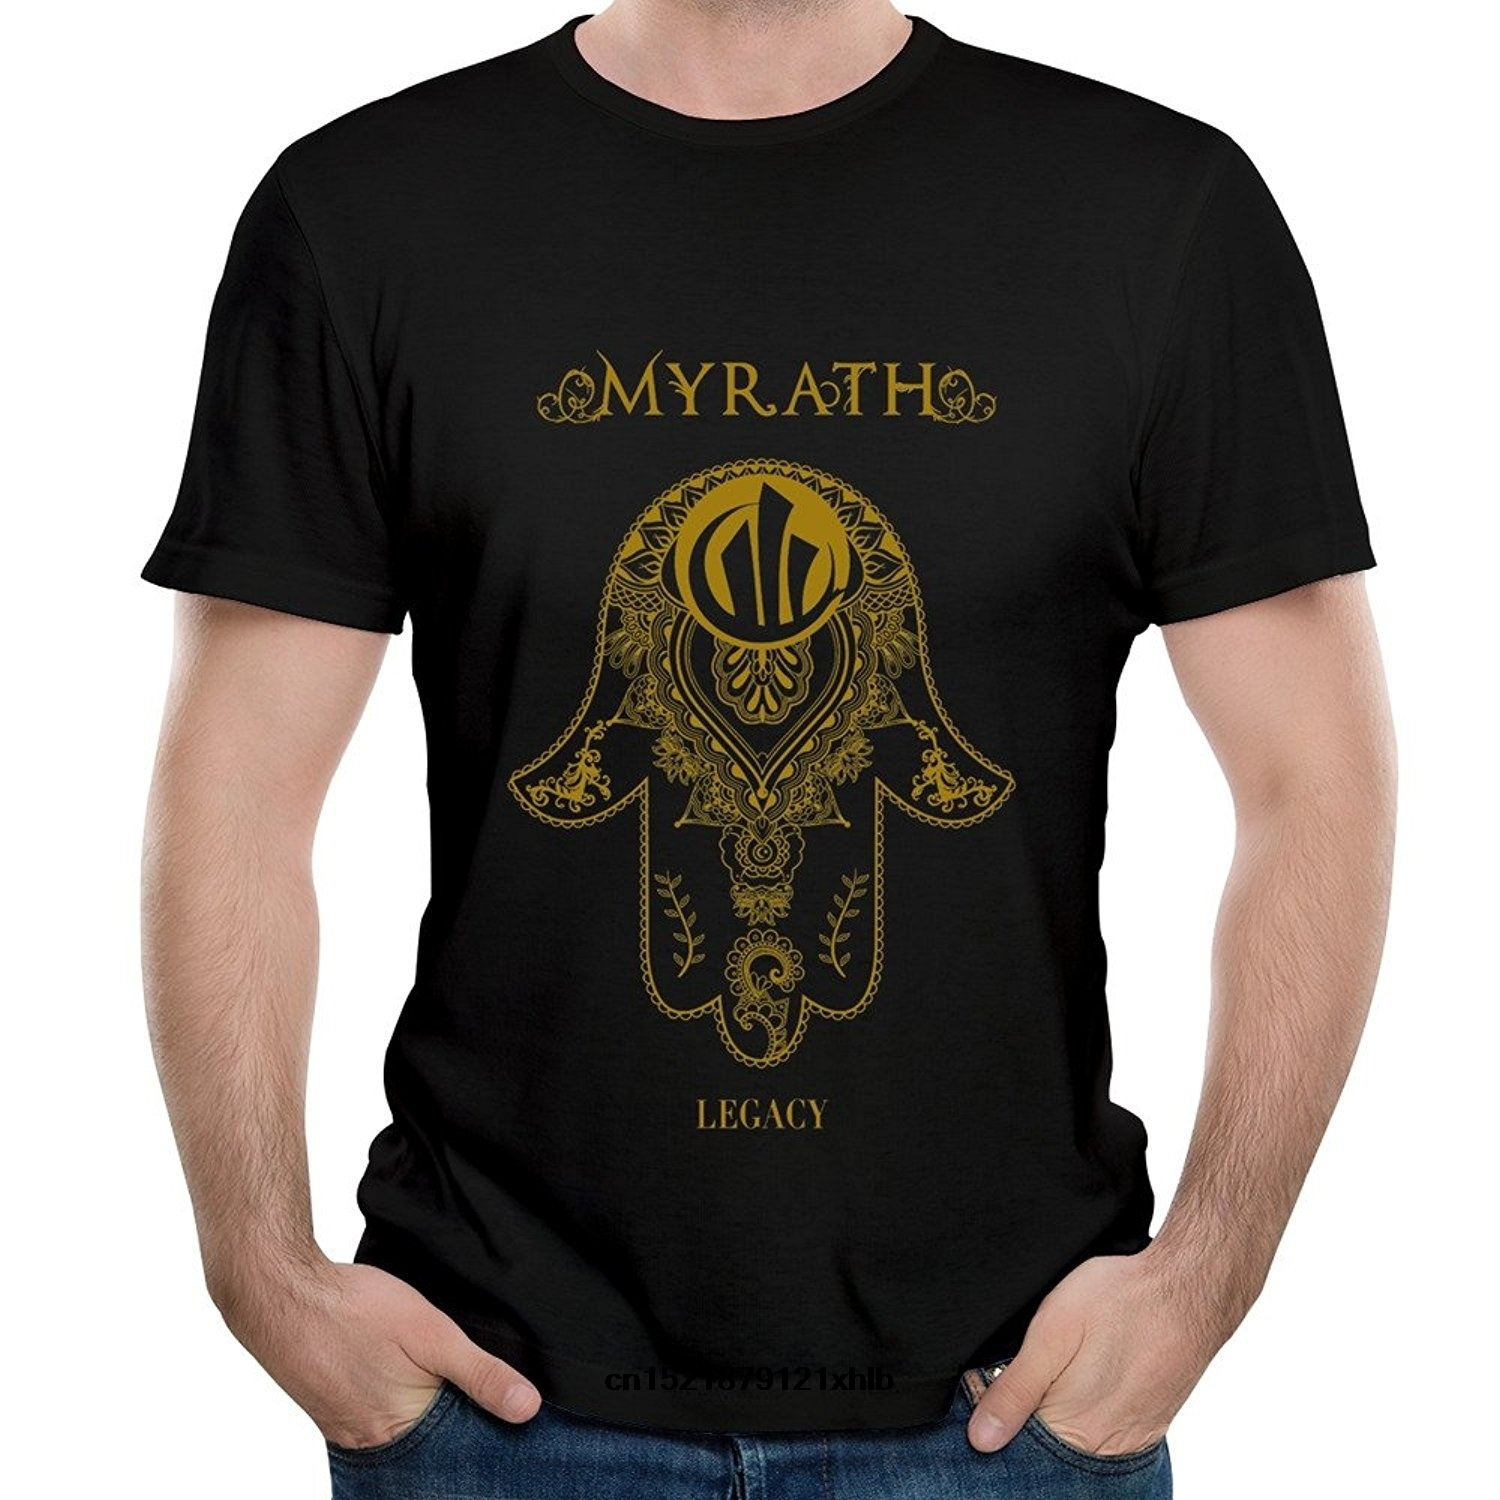 Men T Shirt Band Myrath Seven Sins Song Short Sleeve Tee Shirt Funny T-shirt Novelty Tshirt Women